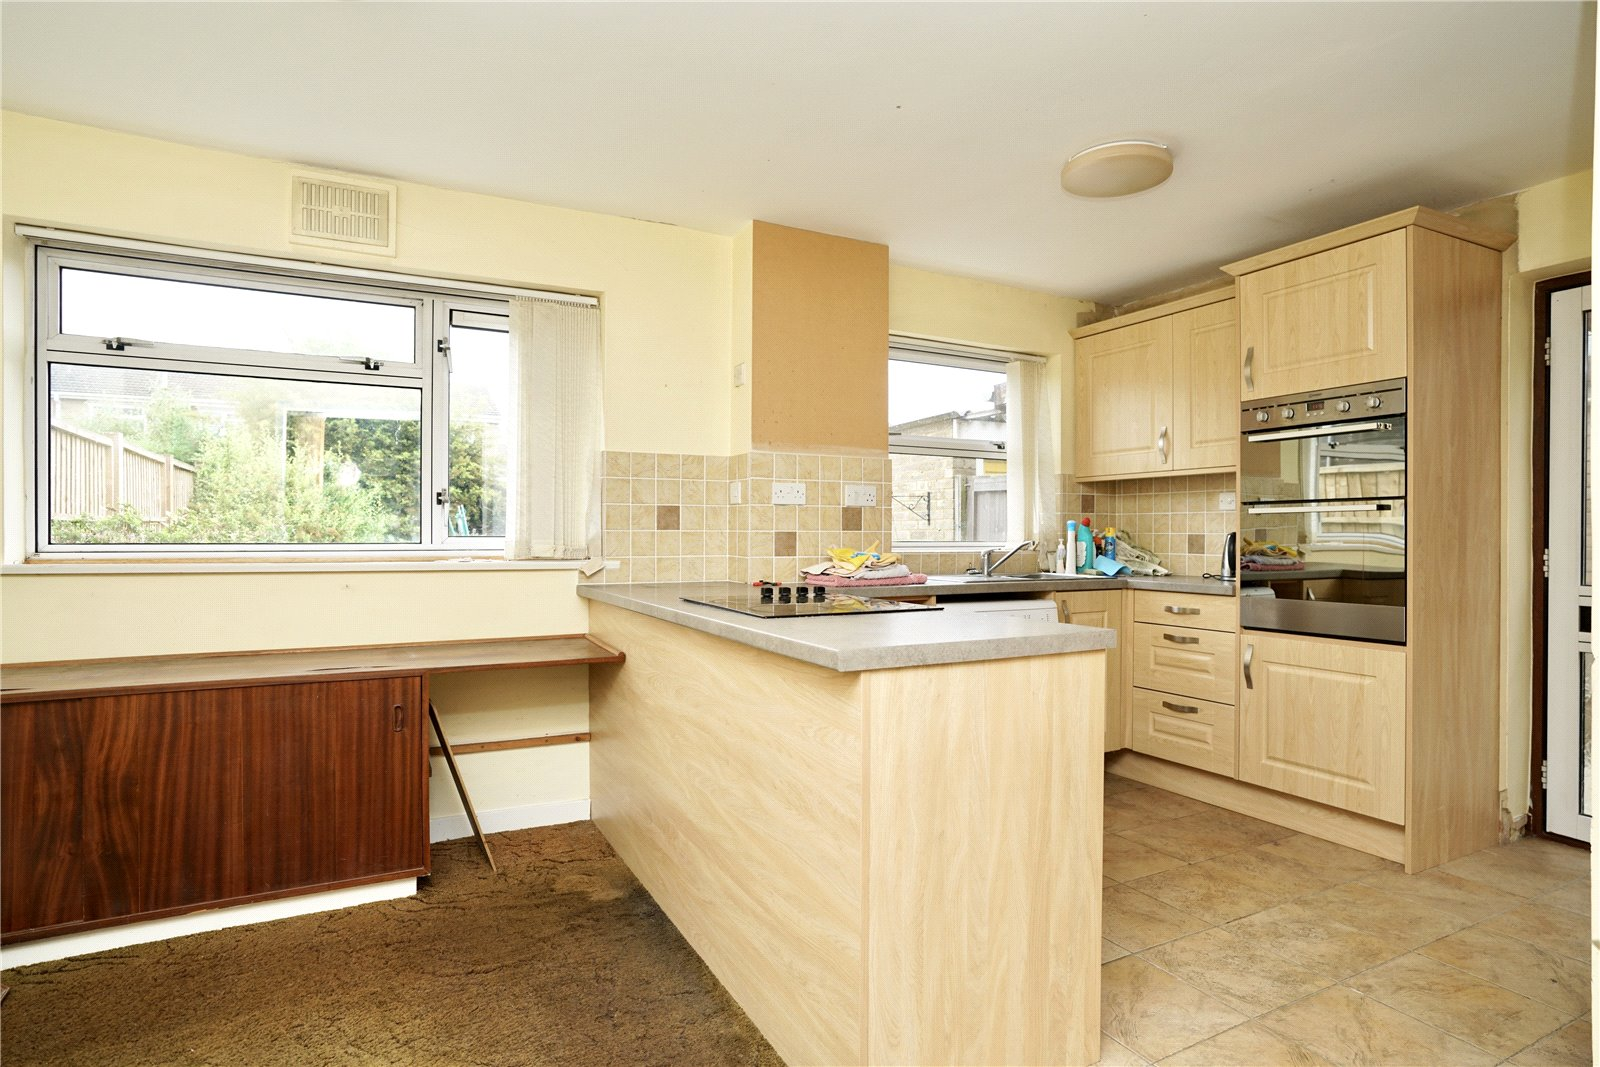 3 bed house for sale in Kenilworth Close, Eaton Socon 1